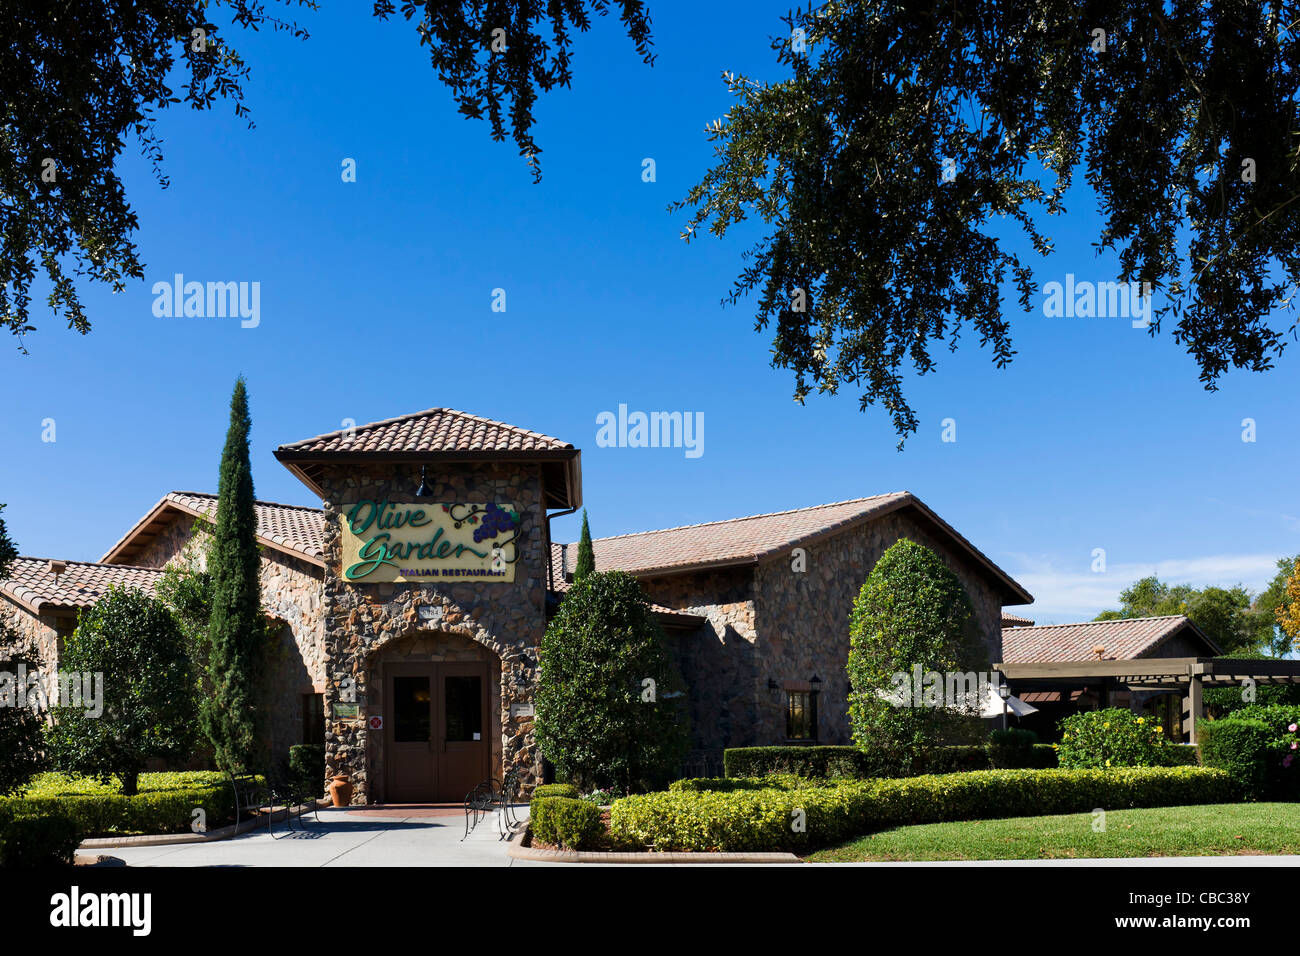 Nice Olive Garden Restaurant On International Drive, Orlando, Central Florida,  USA   Stock Image